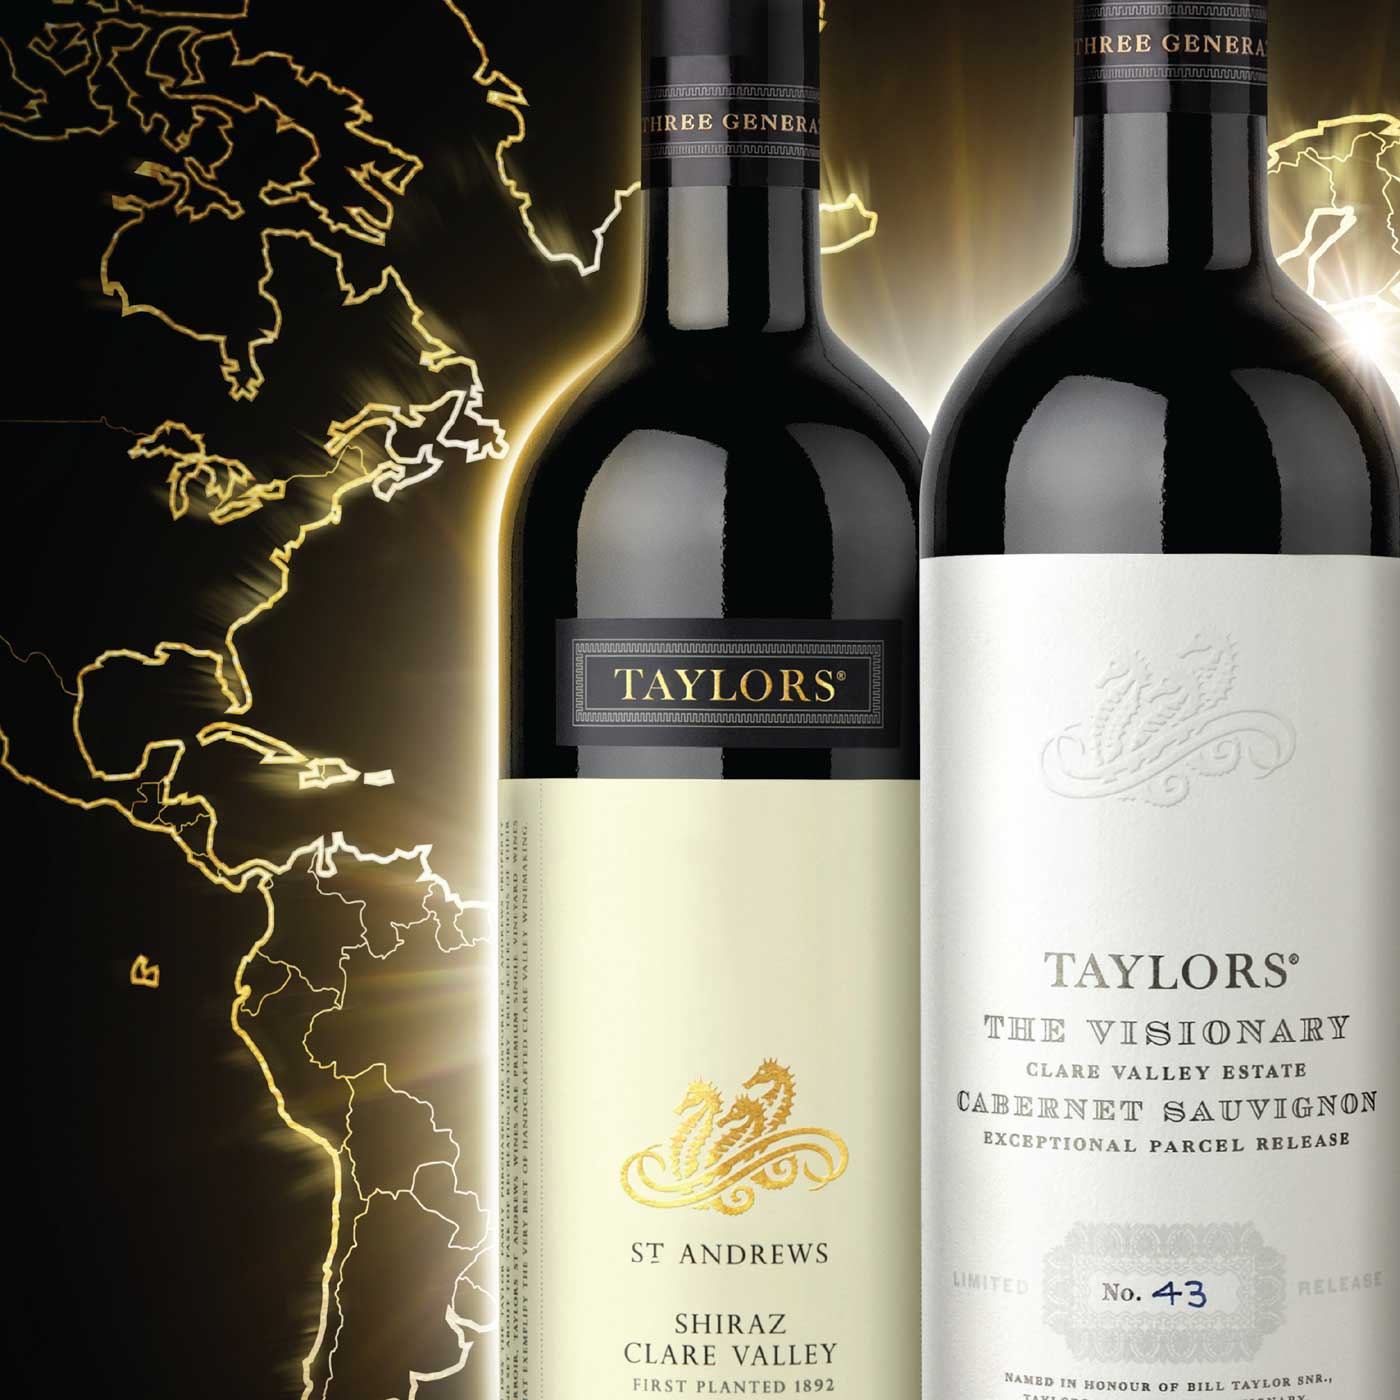 Taylors Worlds most awarded wine campaign tile